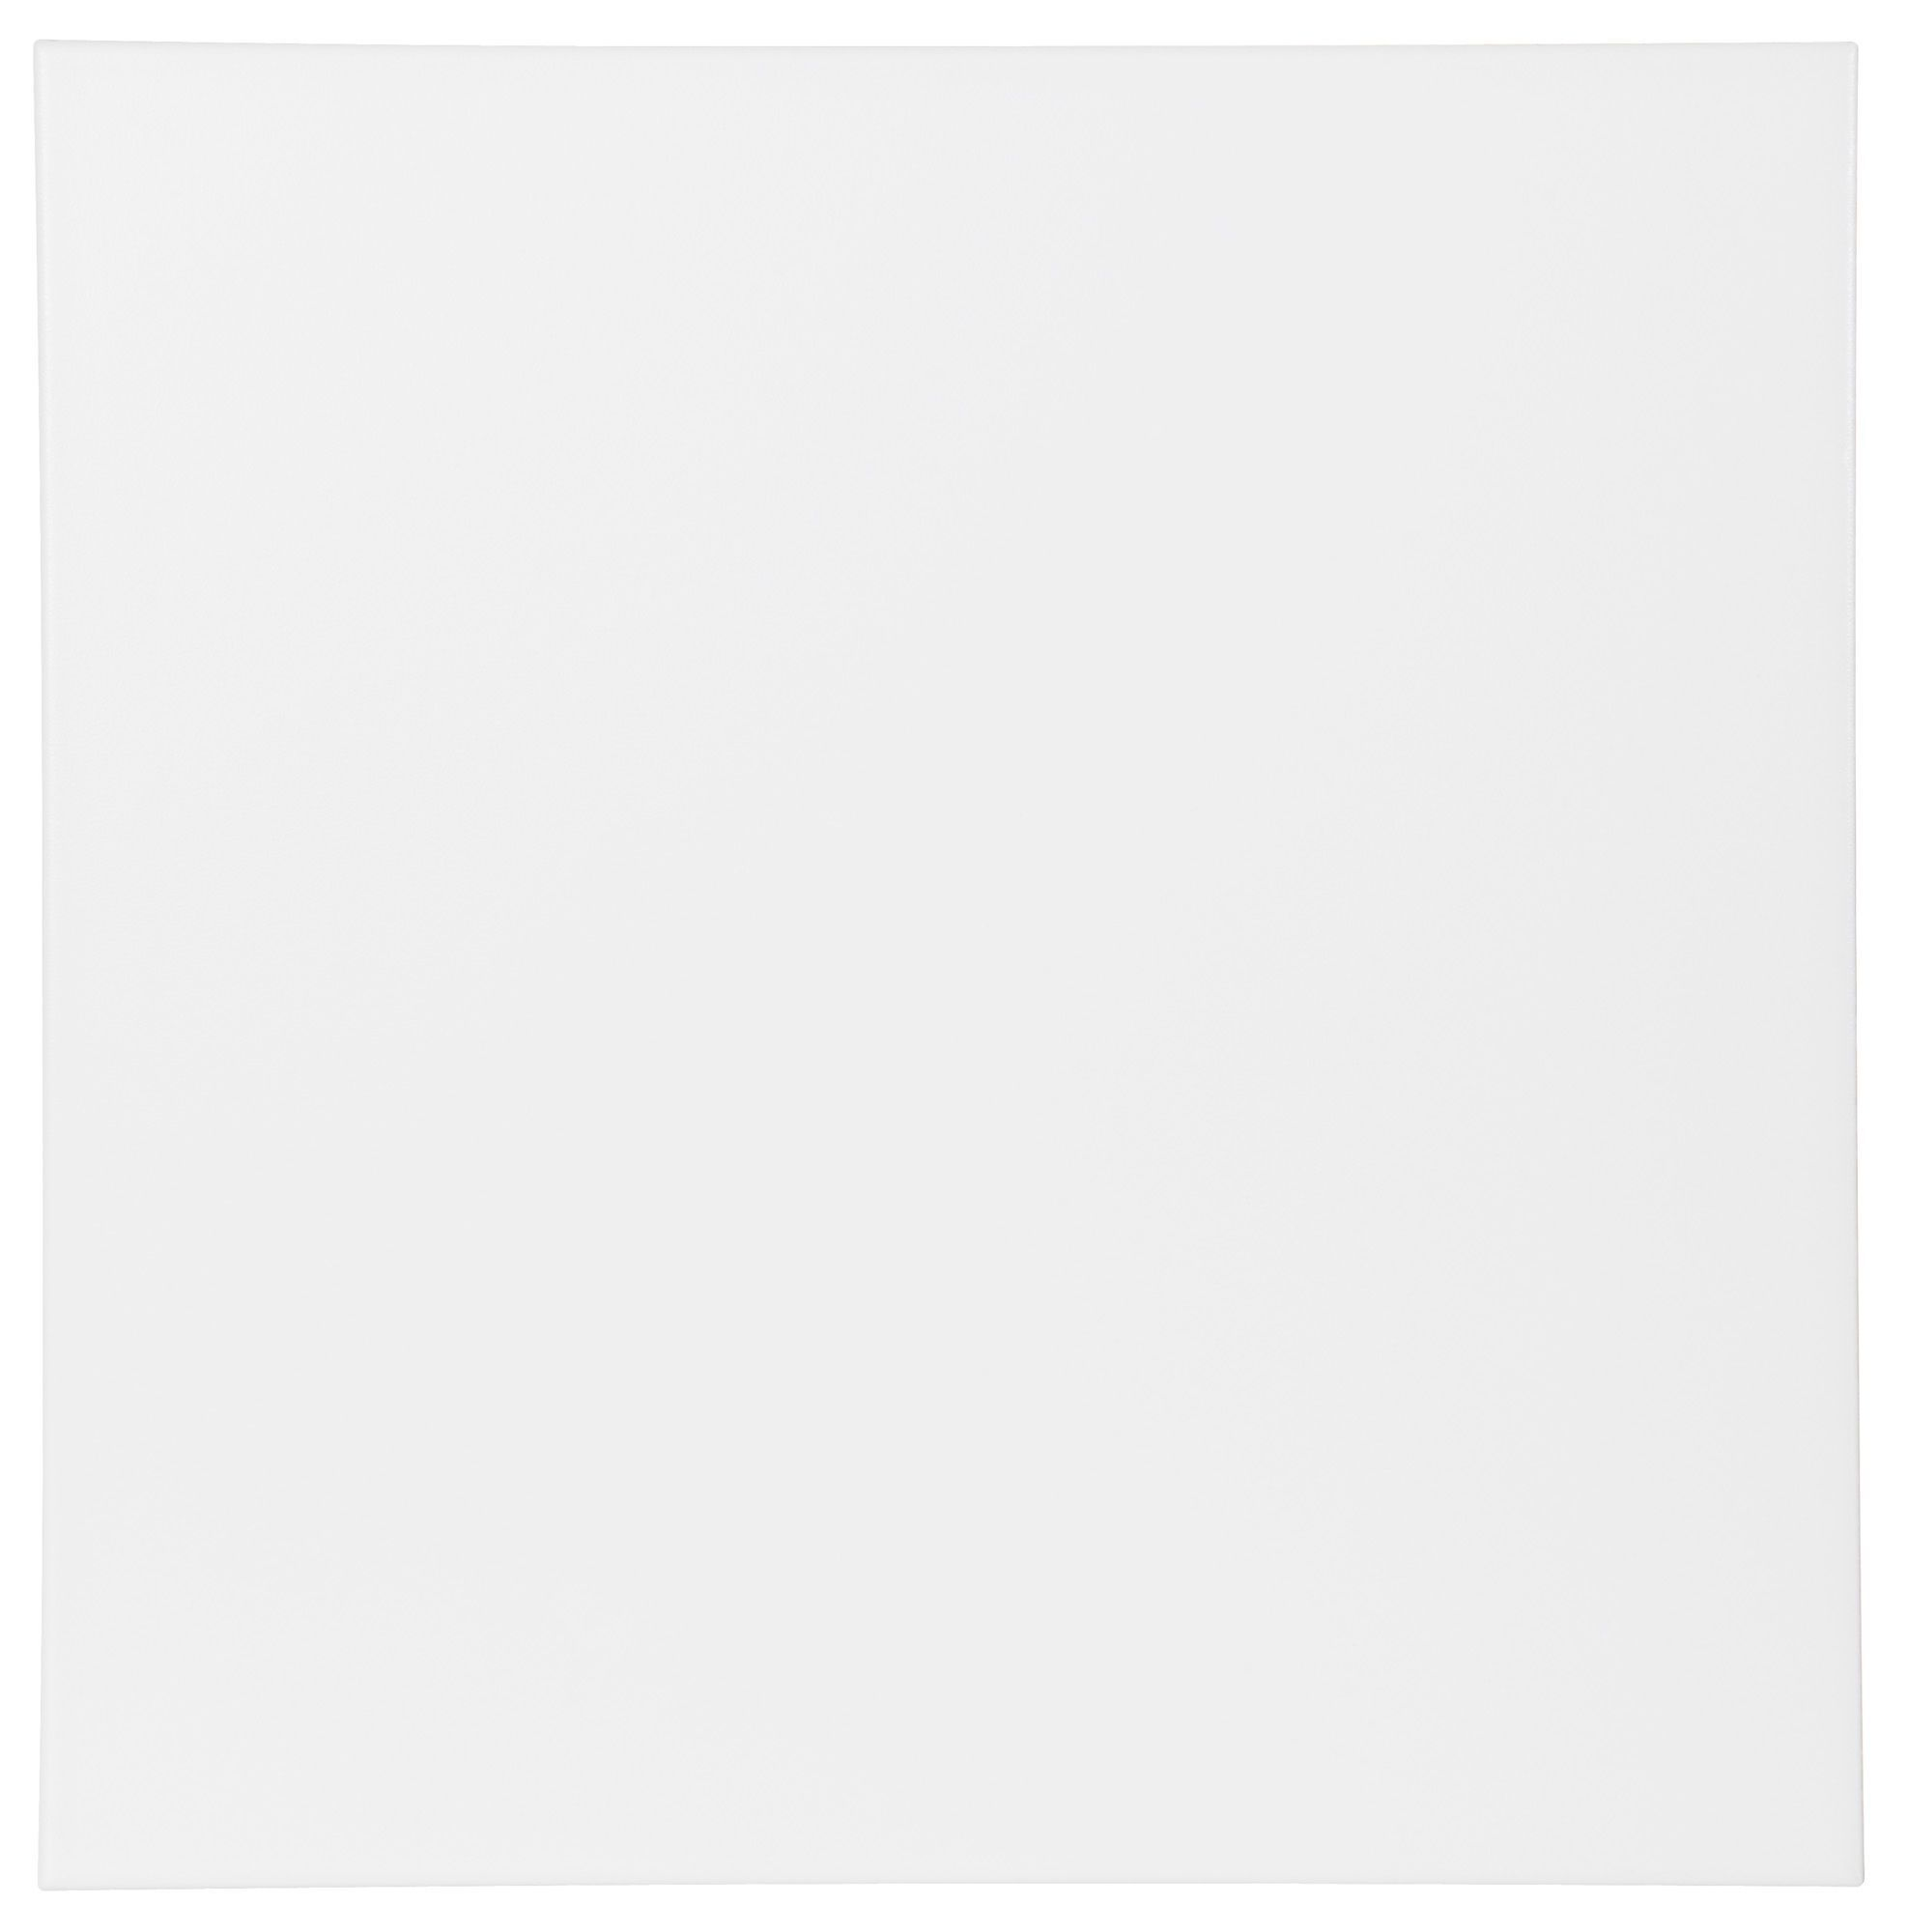 Umbria white porcelain floor tile pack of 9 l333mm w333mm umbria white porcelain floor tile pack of 9 l333mm w333mm departments diy at bq dailygadgetfo Choice Image